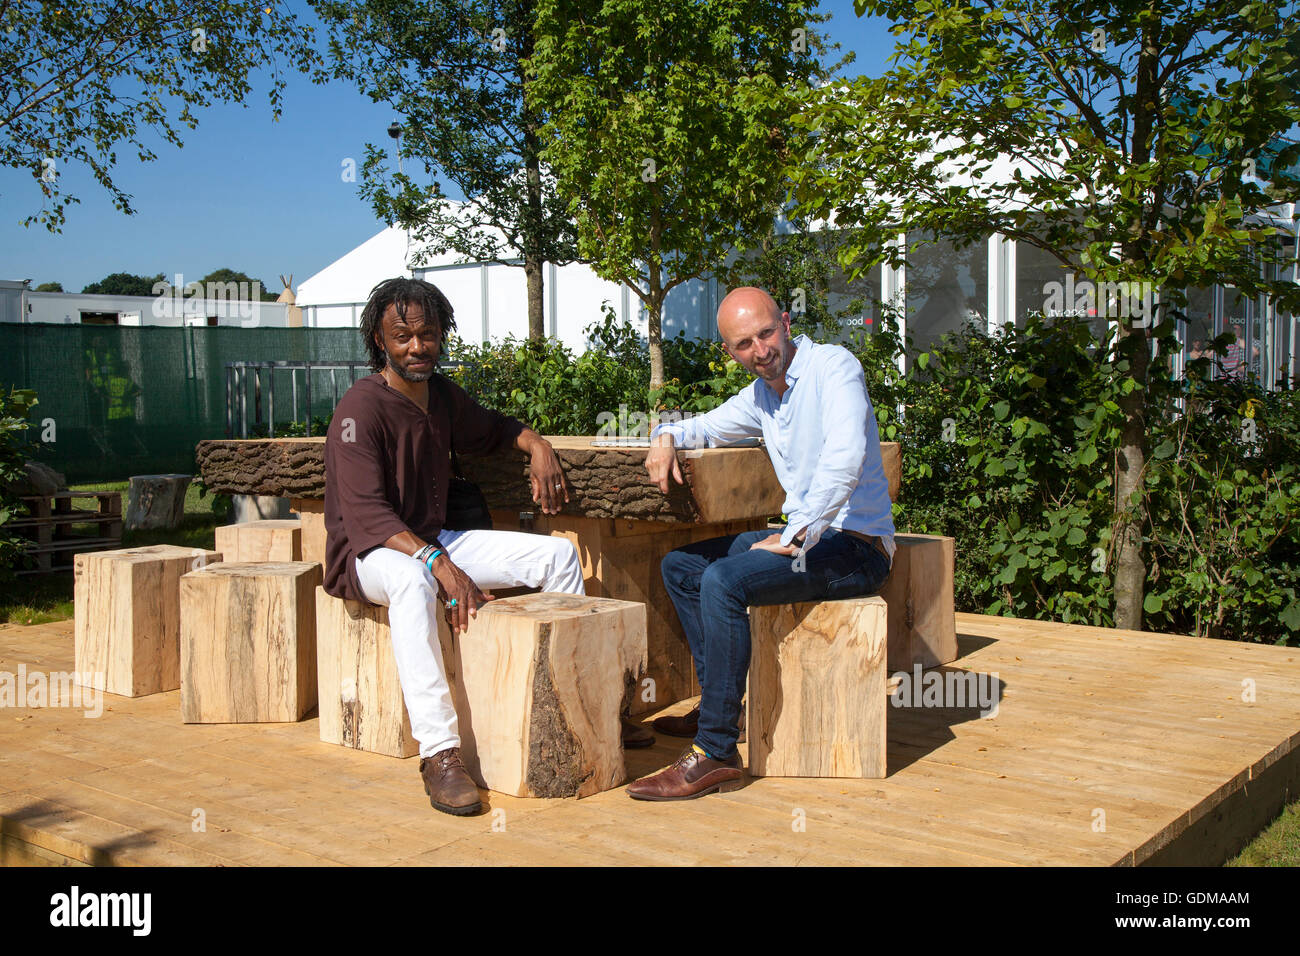 Knutsford, Cheshire, UK. 19th July, 2016. RHS Tatton Park Flower Show. Danny Clarke & Ed Lister from sponsors - Stock Image